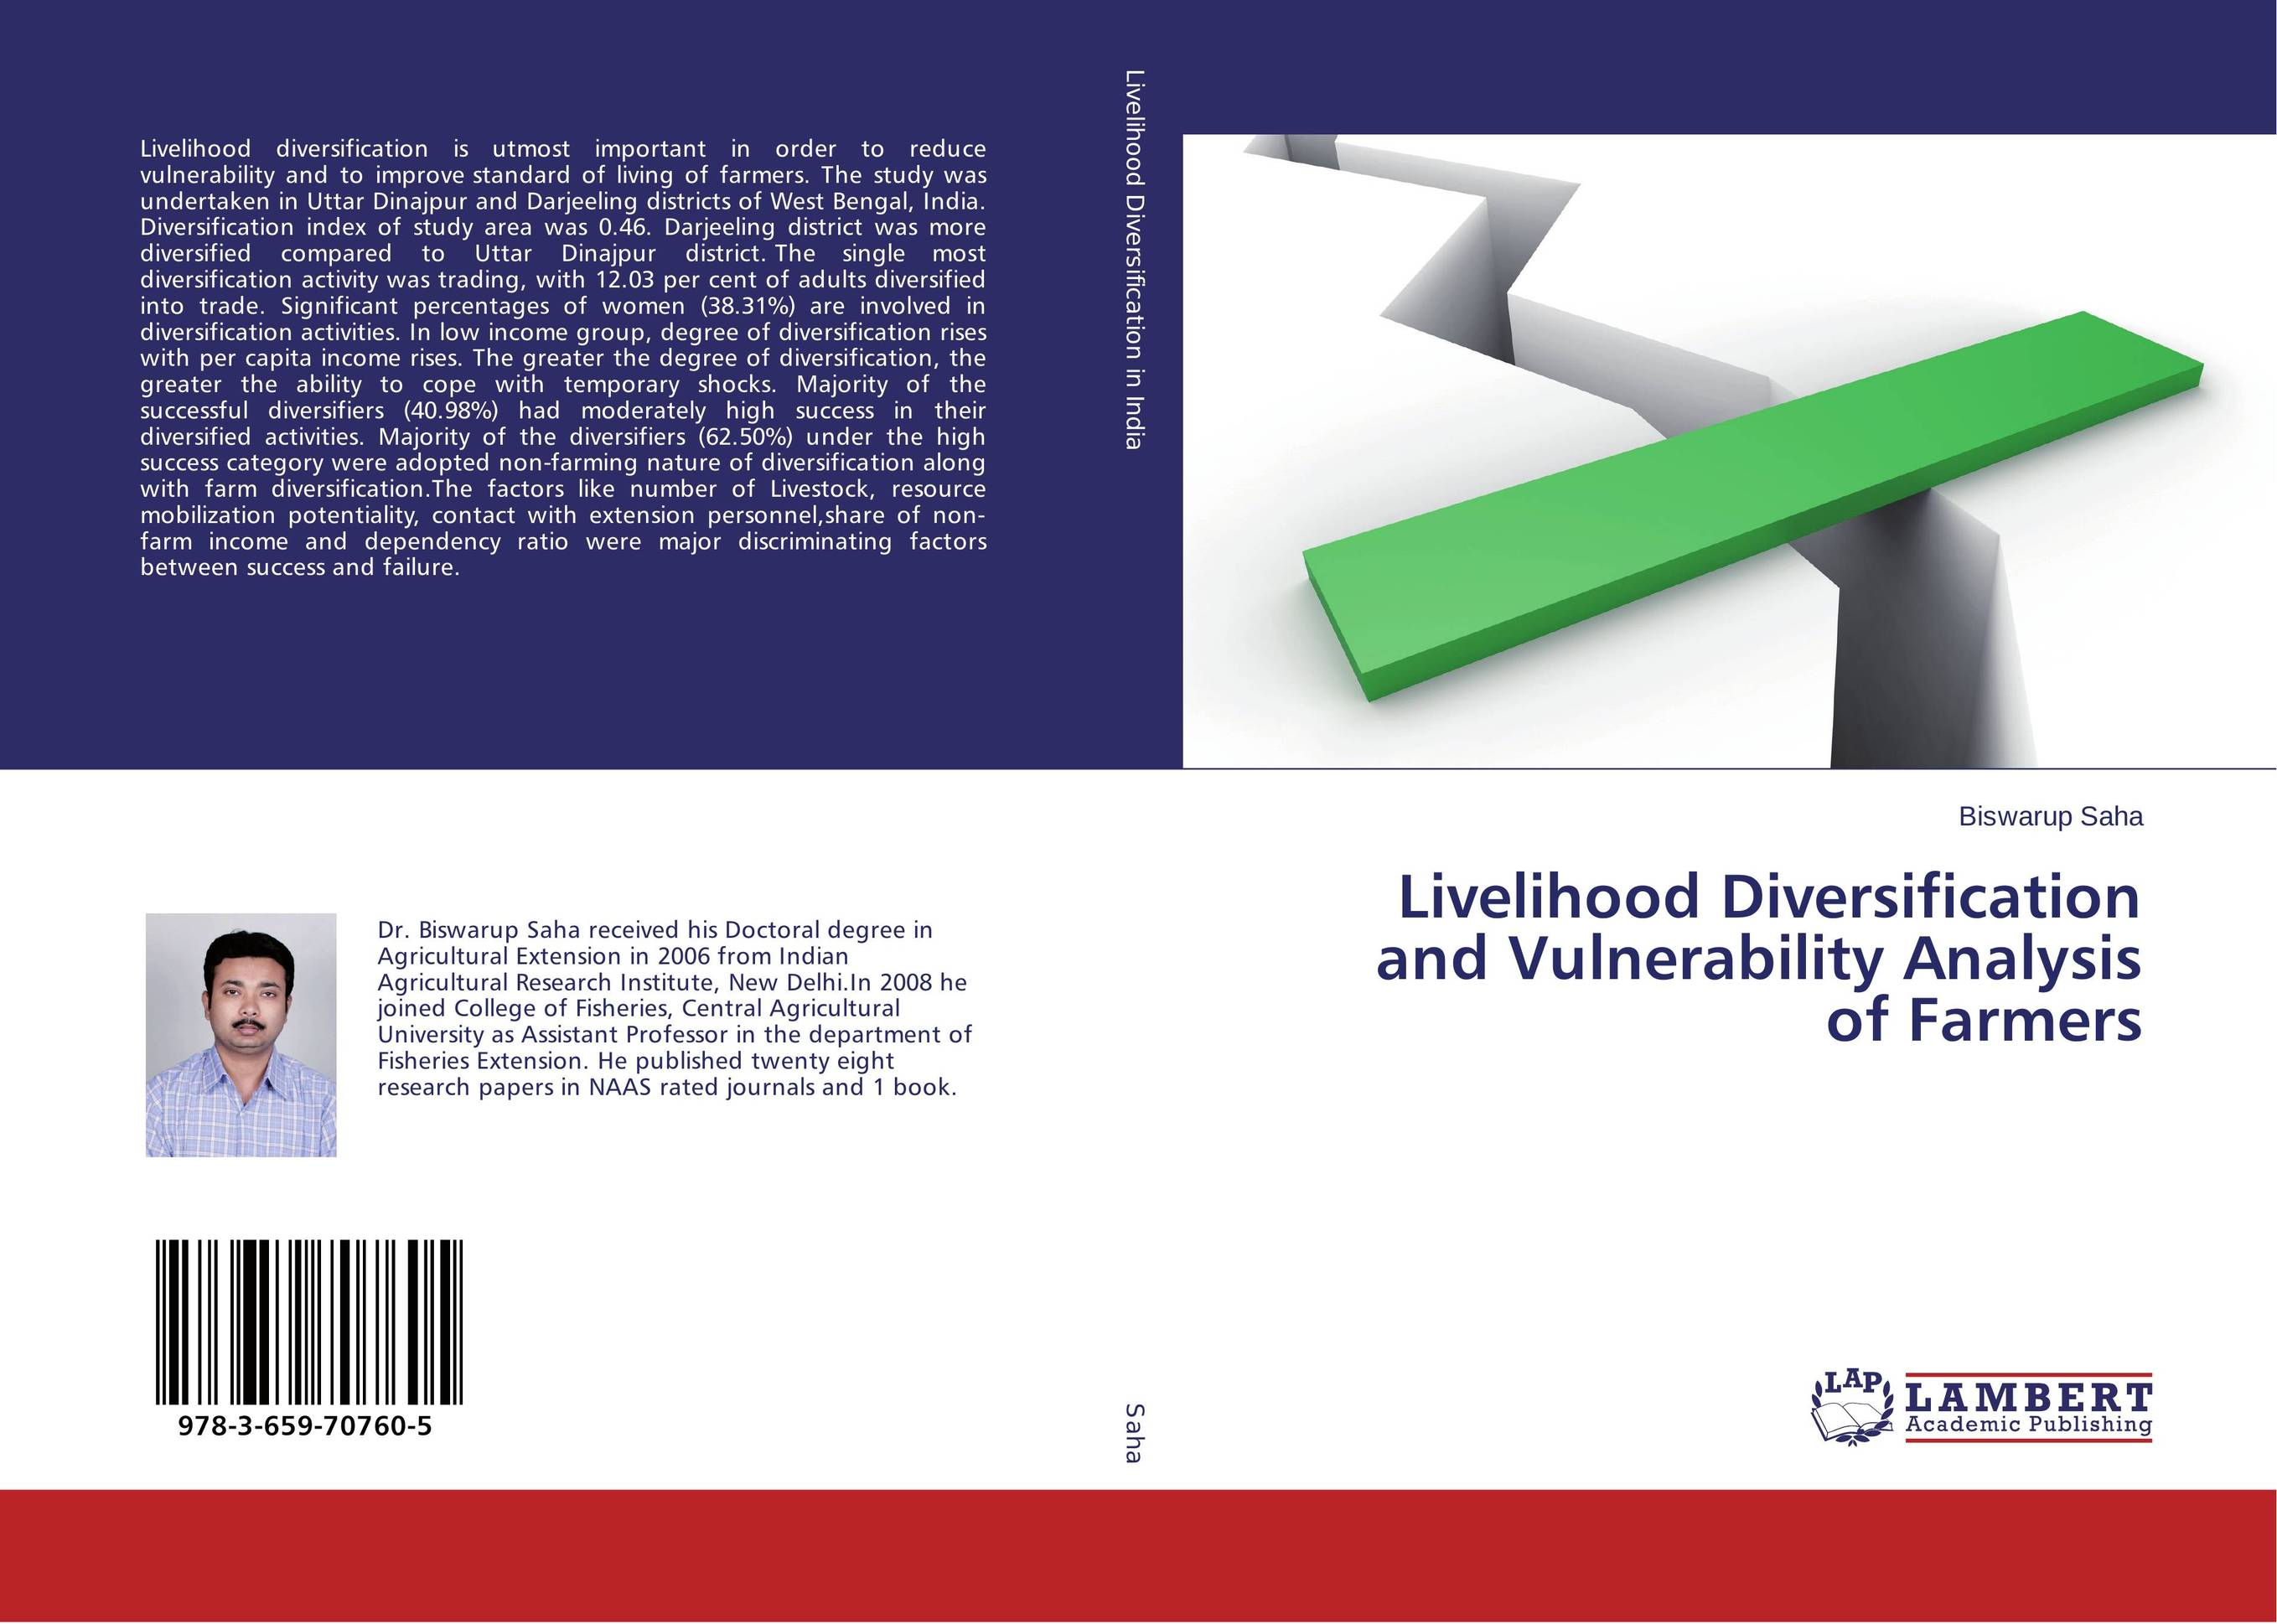 Livelihood Diversification and Vulnerability Analysis of Farmers купить